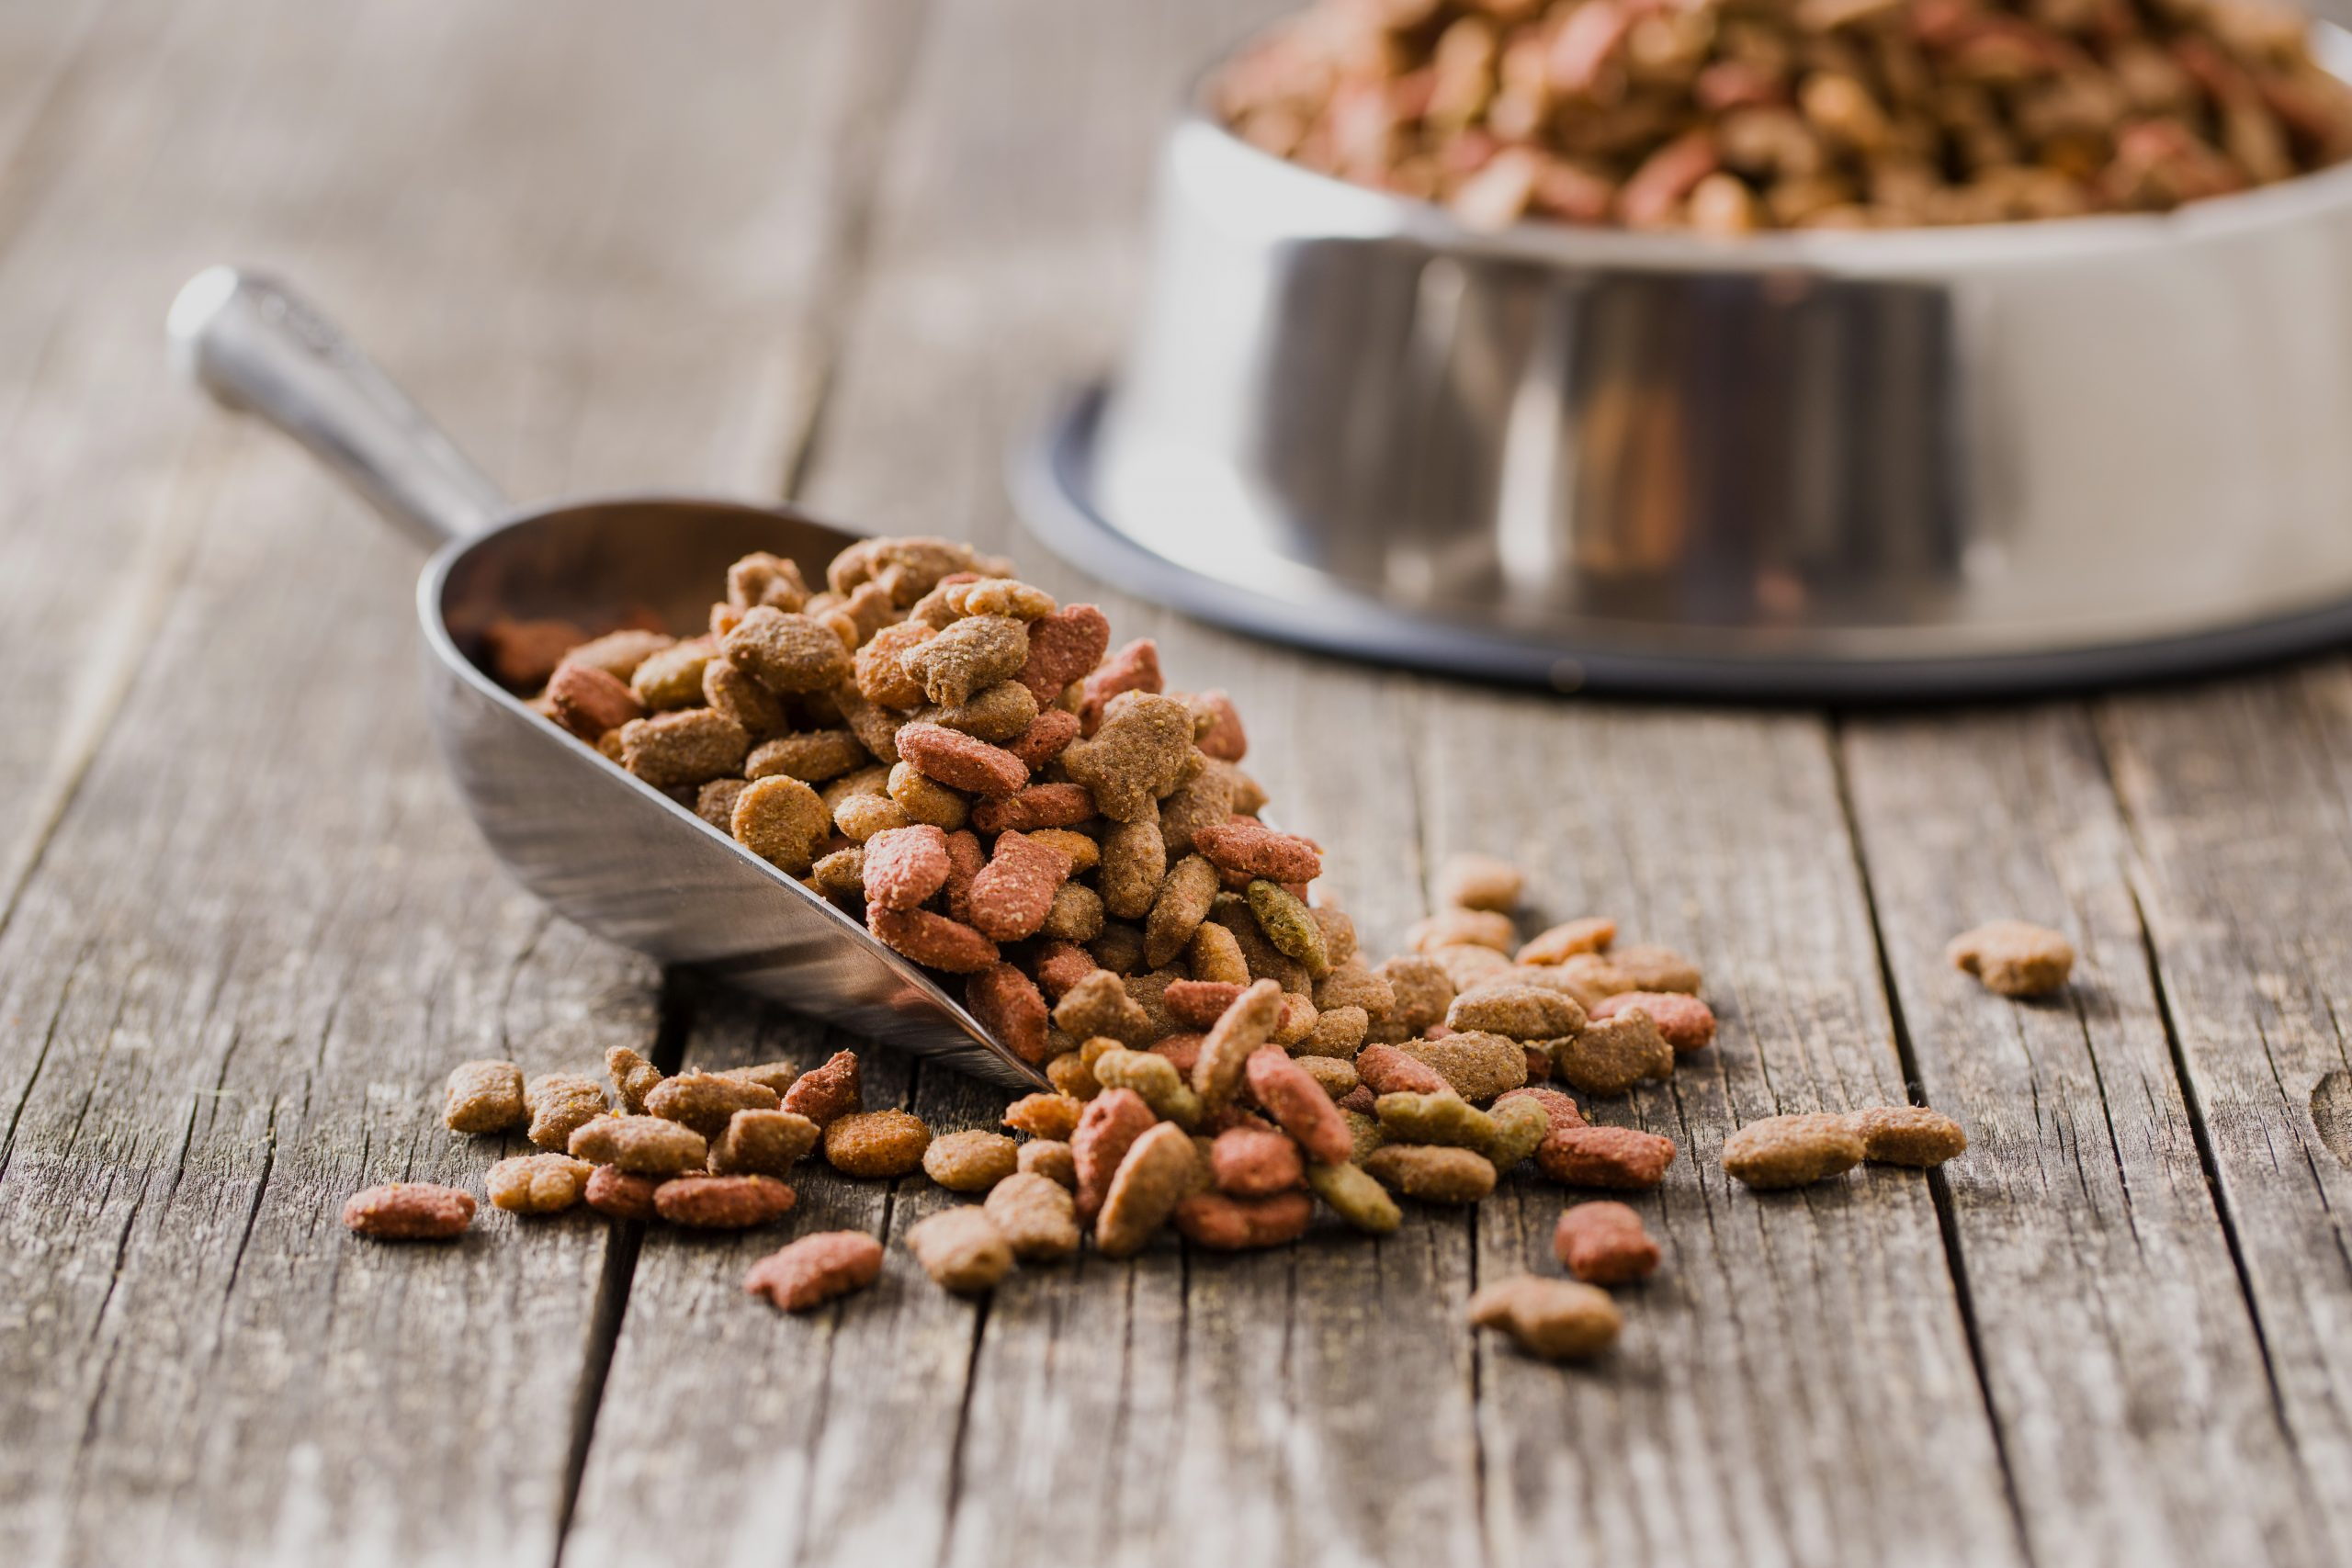 Selling Pet Foods Like A Pro: Furry Friends Will Love This!